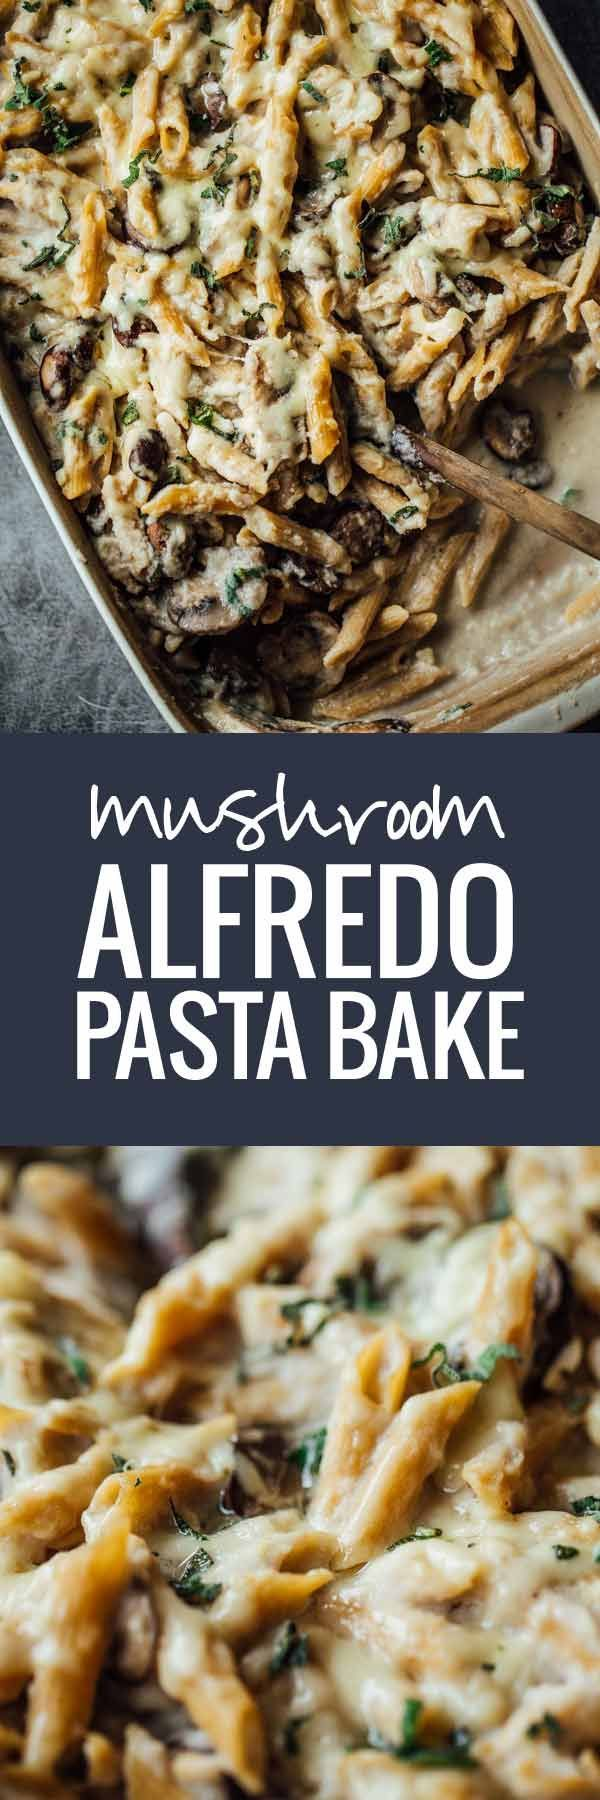 Mushroom Alfredo Pasta Bake - A rustic comfort food with creamy cauliflower sauce